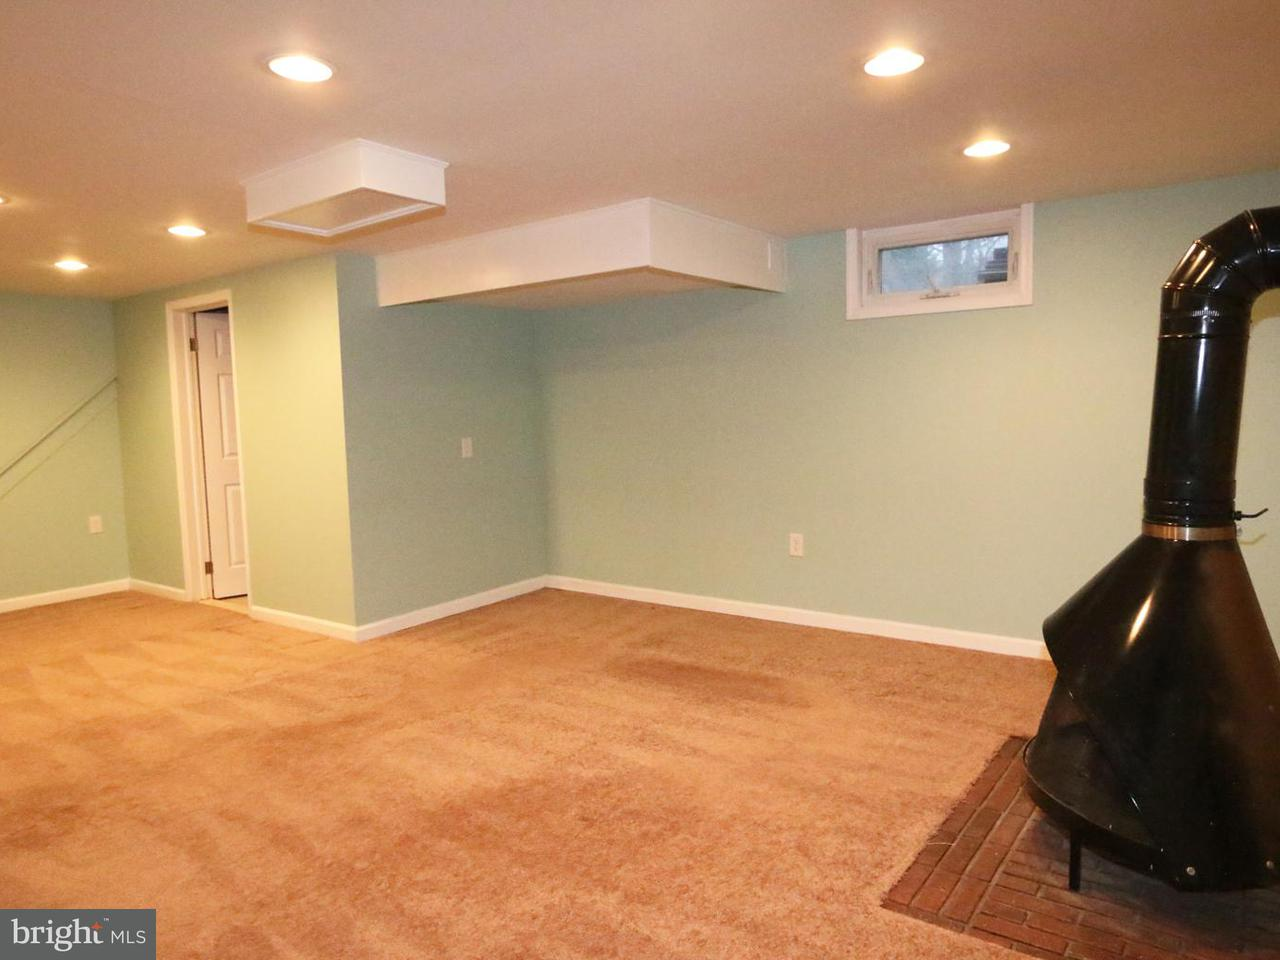 Additional photo for property listing at 10003 Duncan Street 10003 Duncan Street Fairfax, Virginia 22031 Stati Uniti